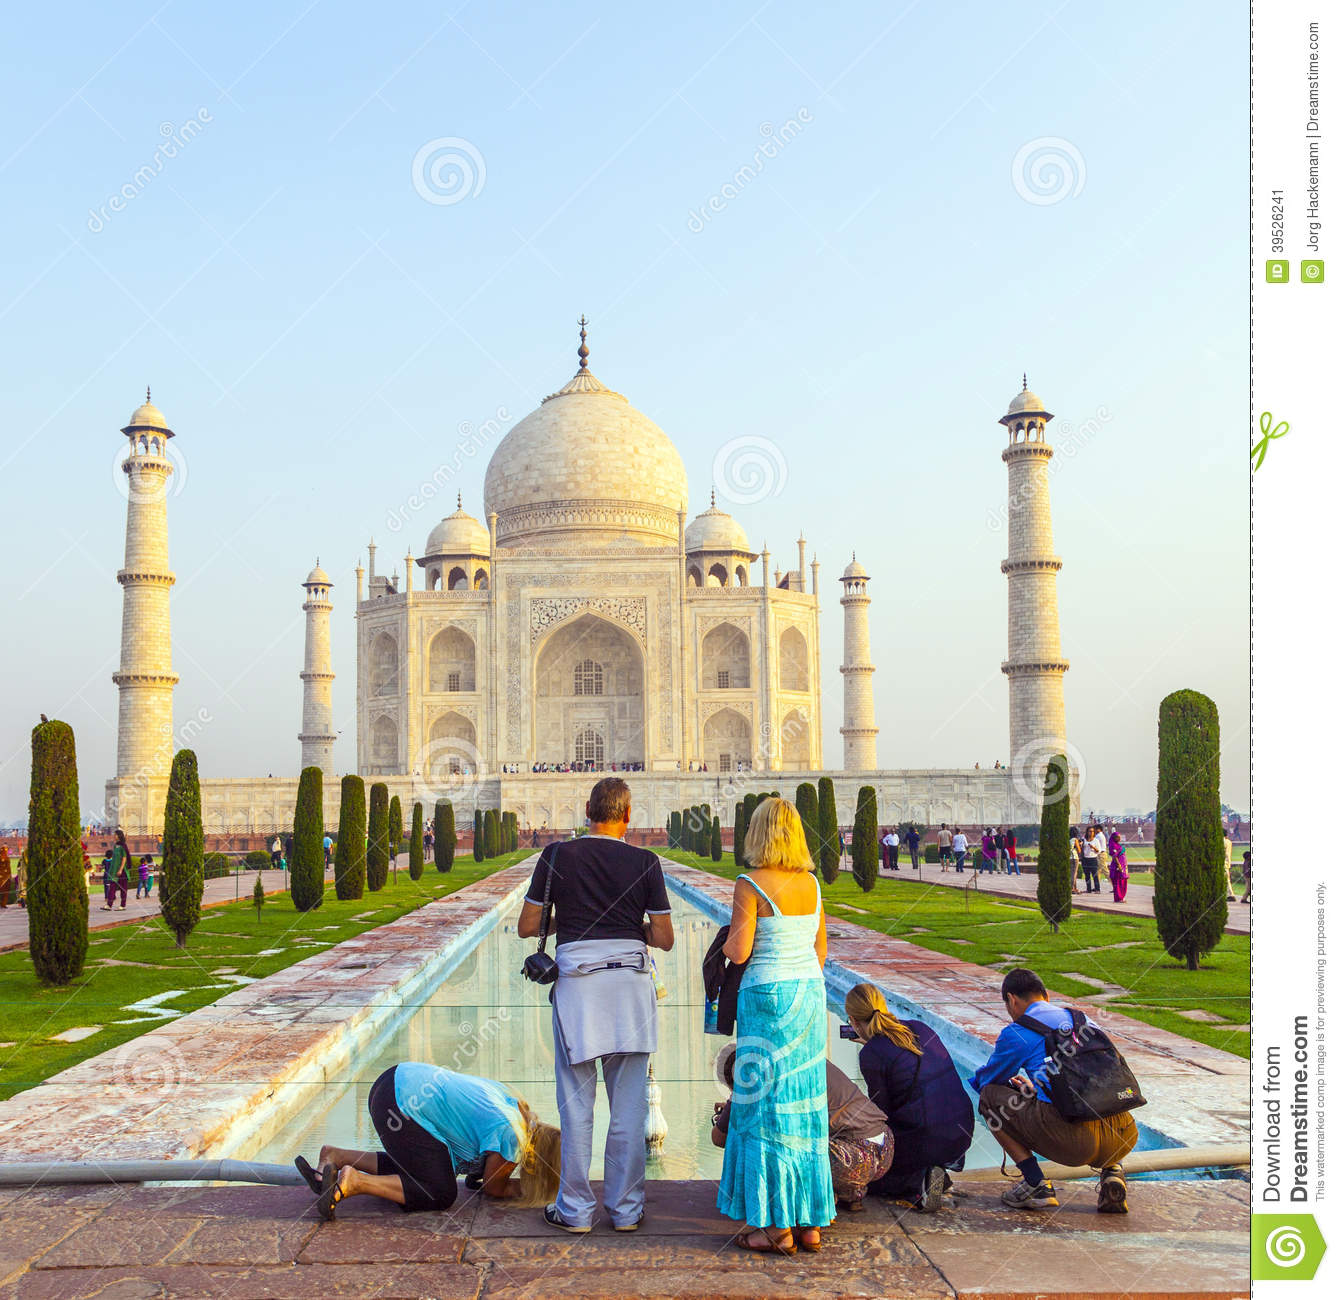 agra hindu single men Golden triangle tour is short tour package in india who travel to india for 3 days, 4 days, 5 days tour visiting delhi, agra for taj mahal and jaipur capital of.